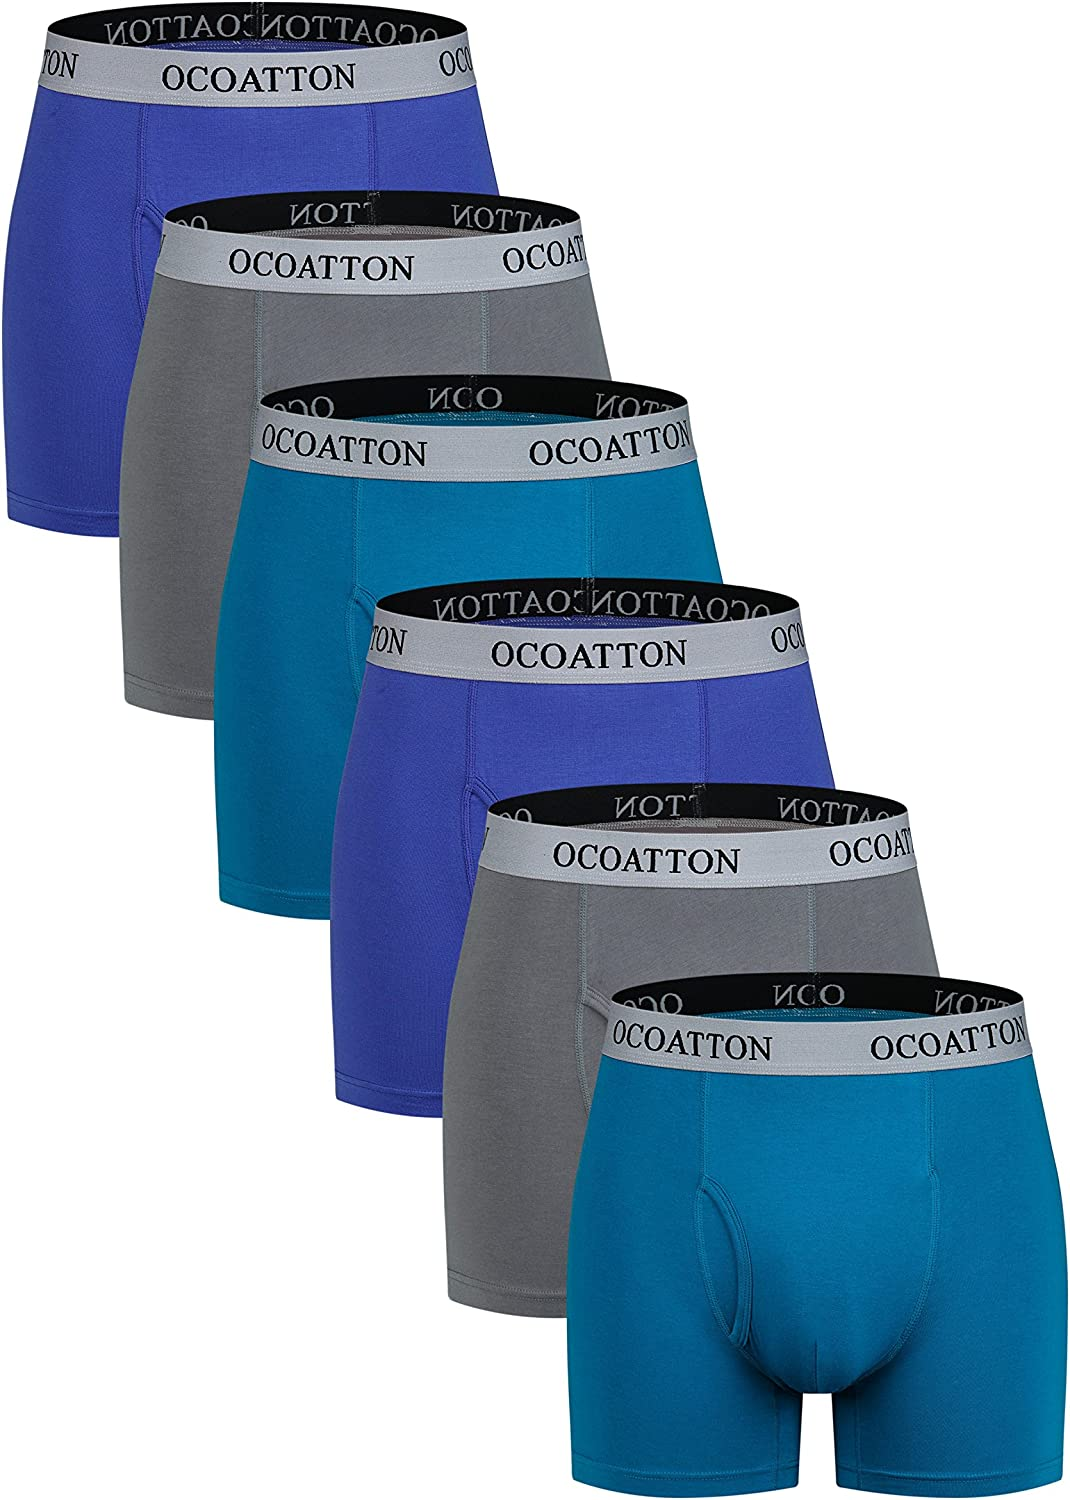 OCOATTON Men's Boxer Briefs Big and Tall Combed Cotton Underwear Open Fly 6-Pack